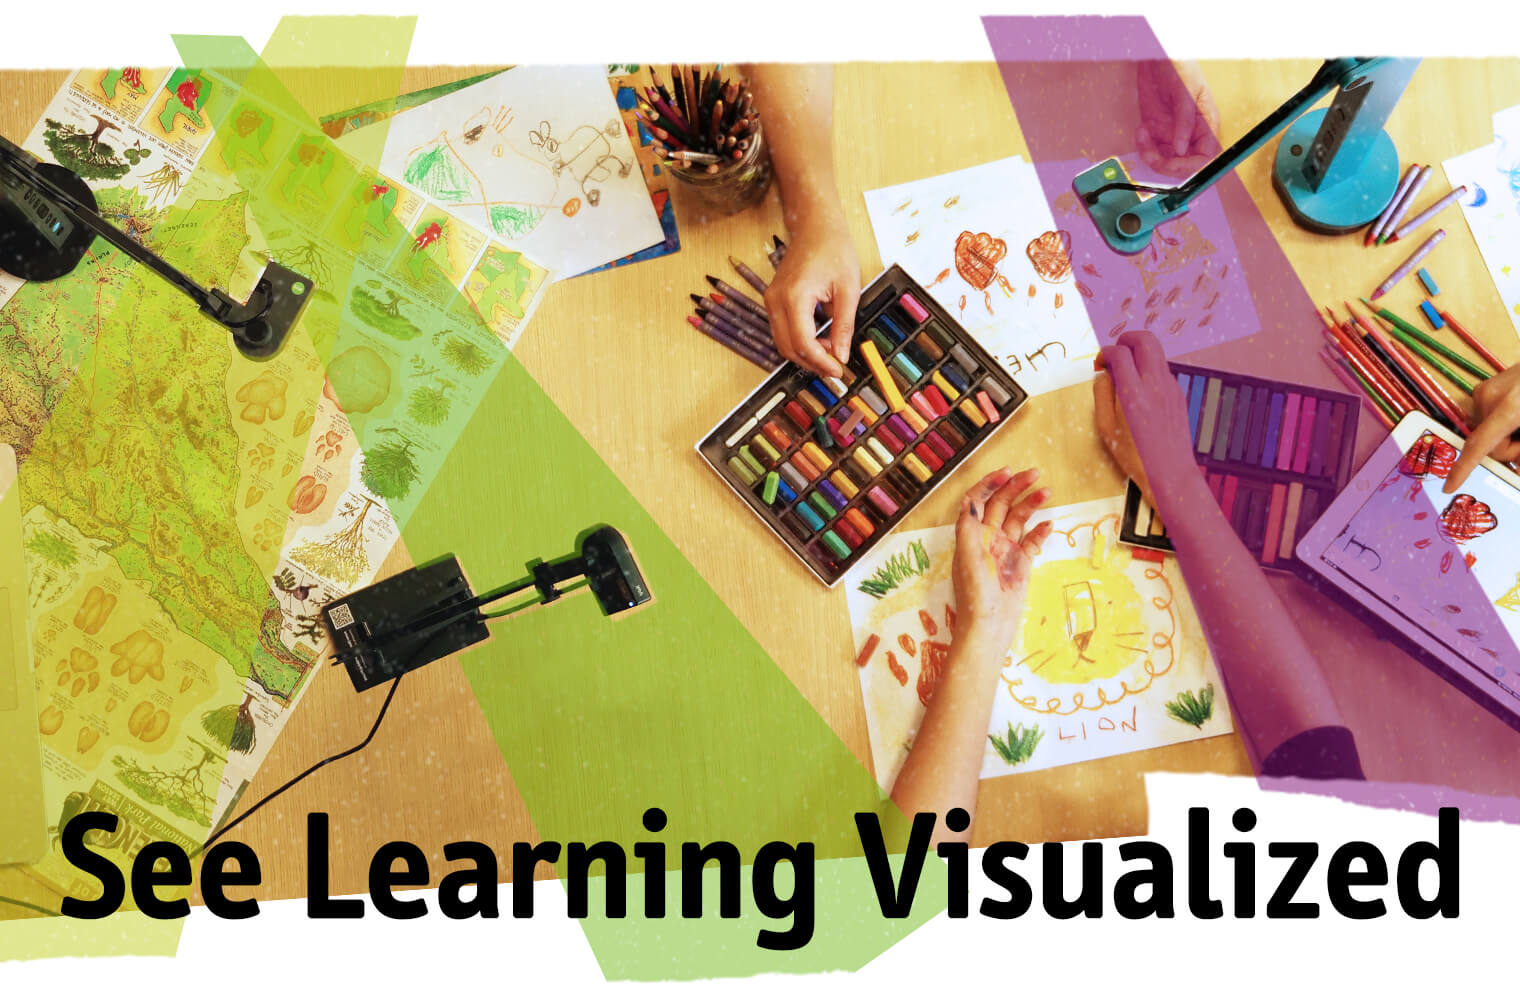 See Learning Visualized